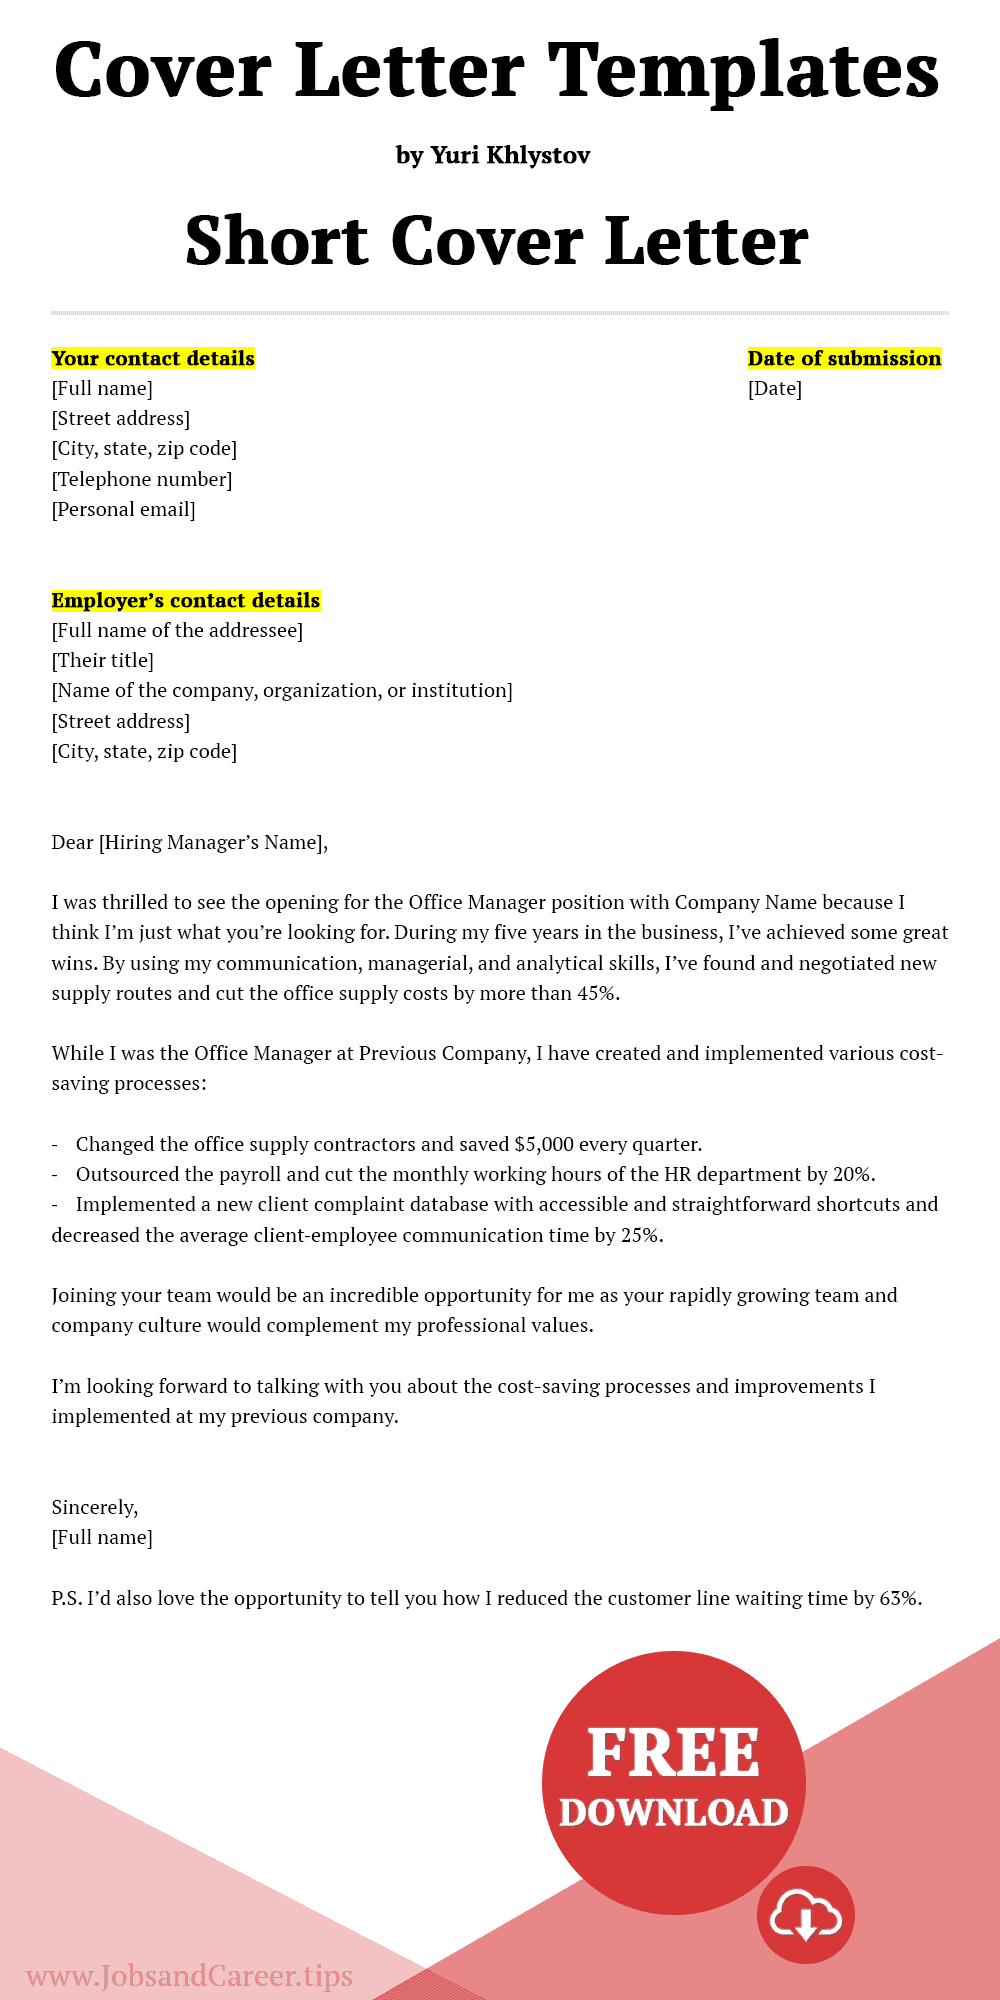 Click to download short cover letter template